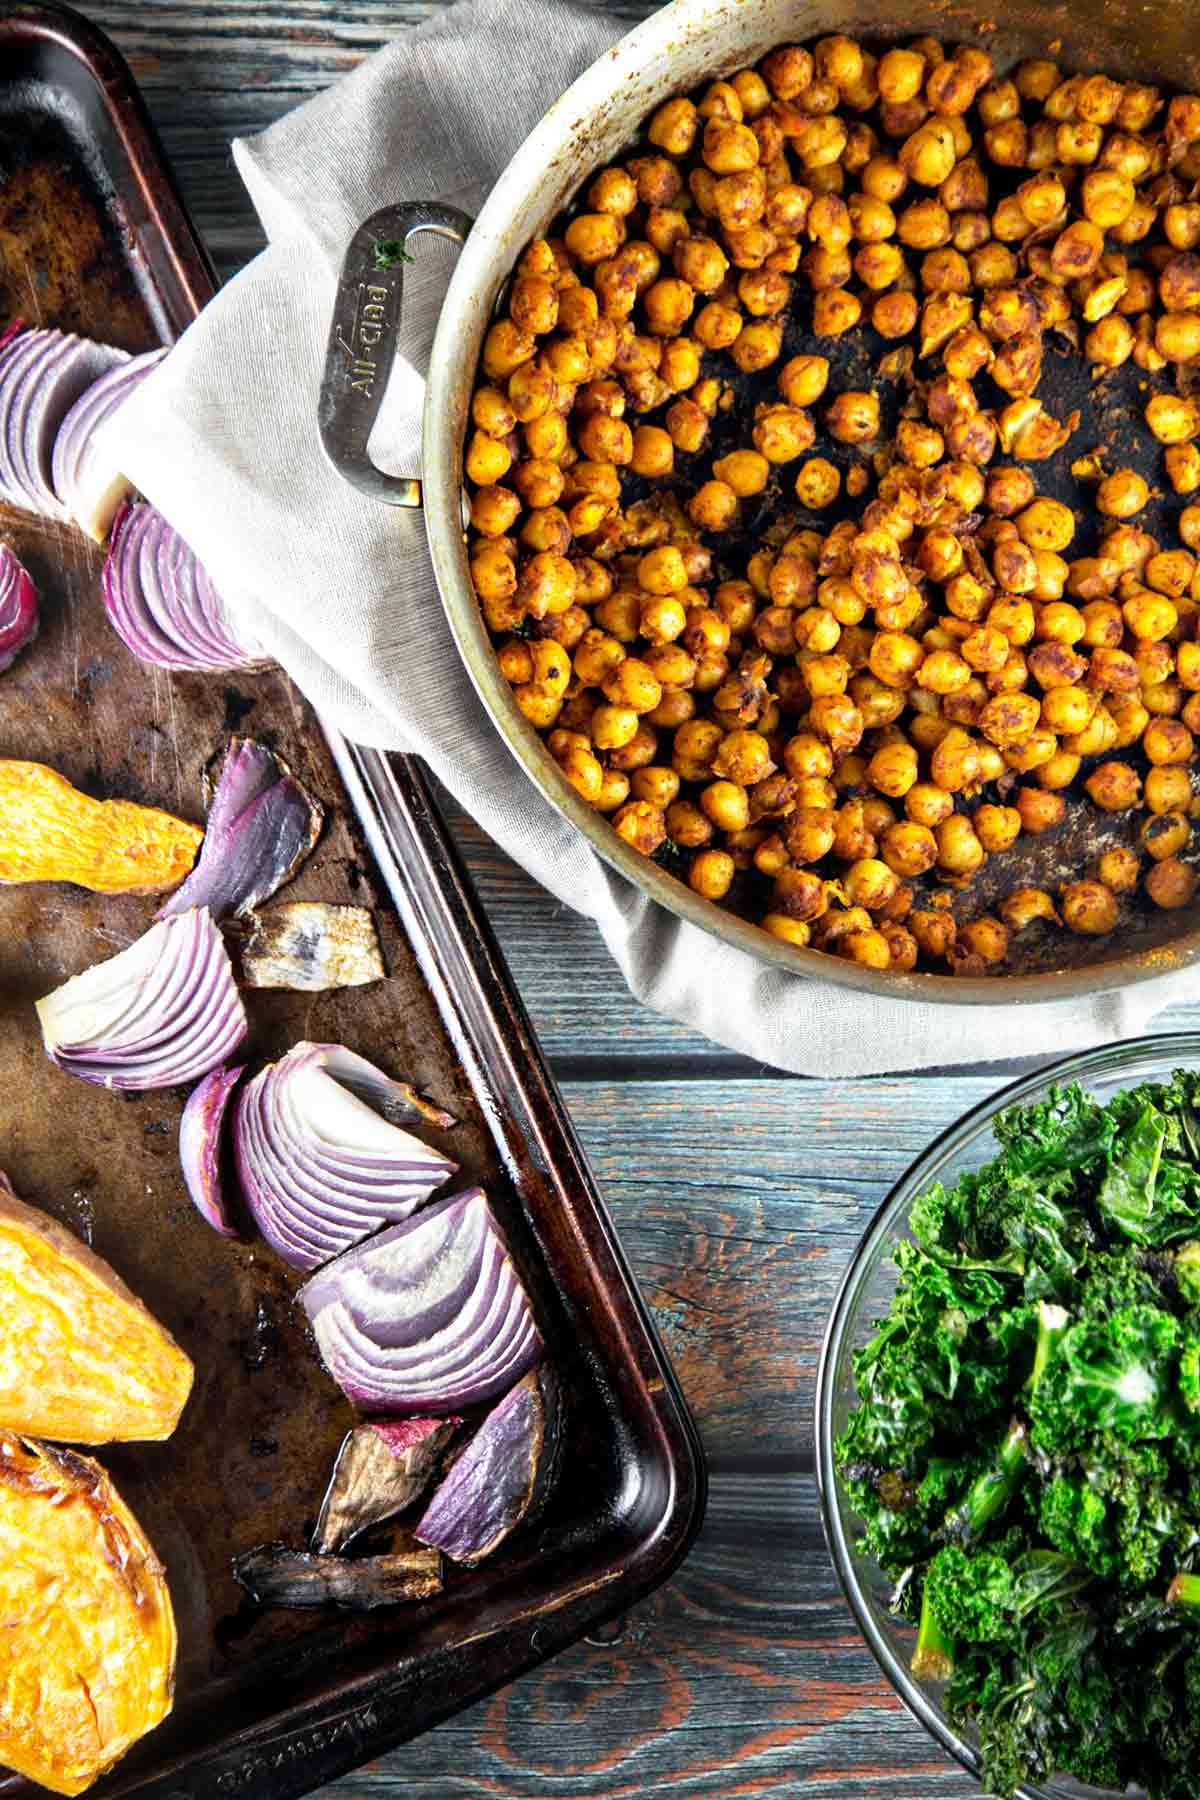 sheet pan with roasted sweet potatoes and onions next to a skillet with sauteed chickpeas and kale